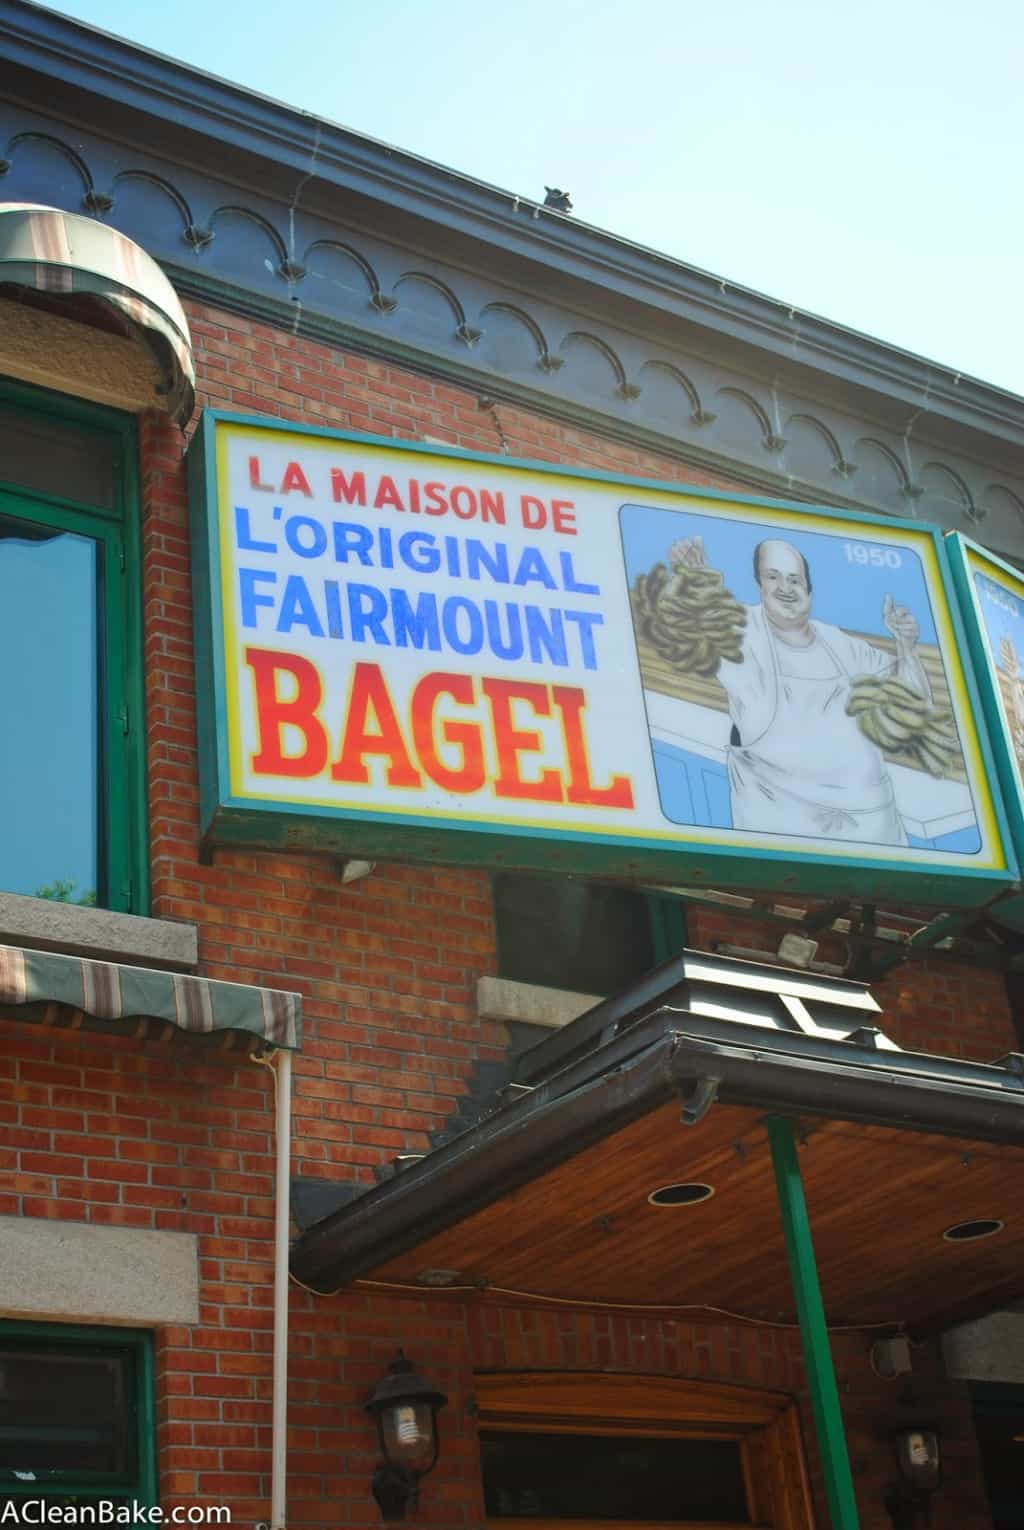 A Virtual Tour of Montreal's Sites and Flavors from ACleanBake.com